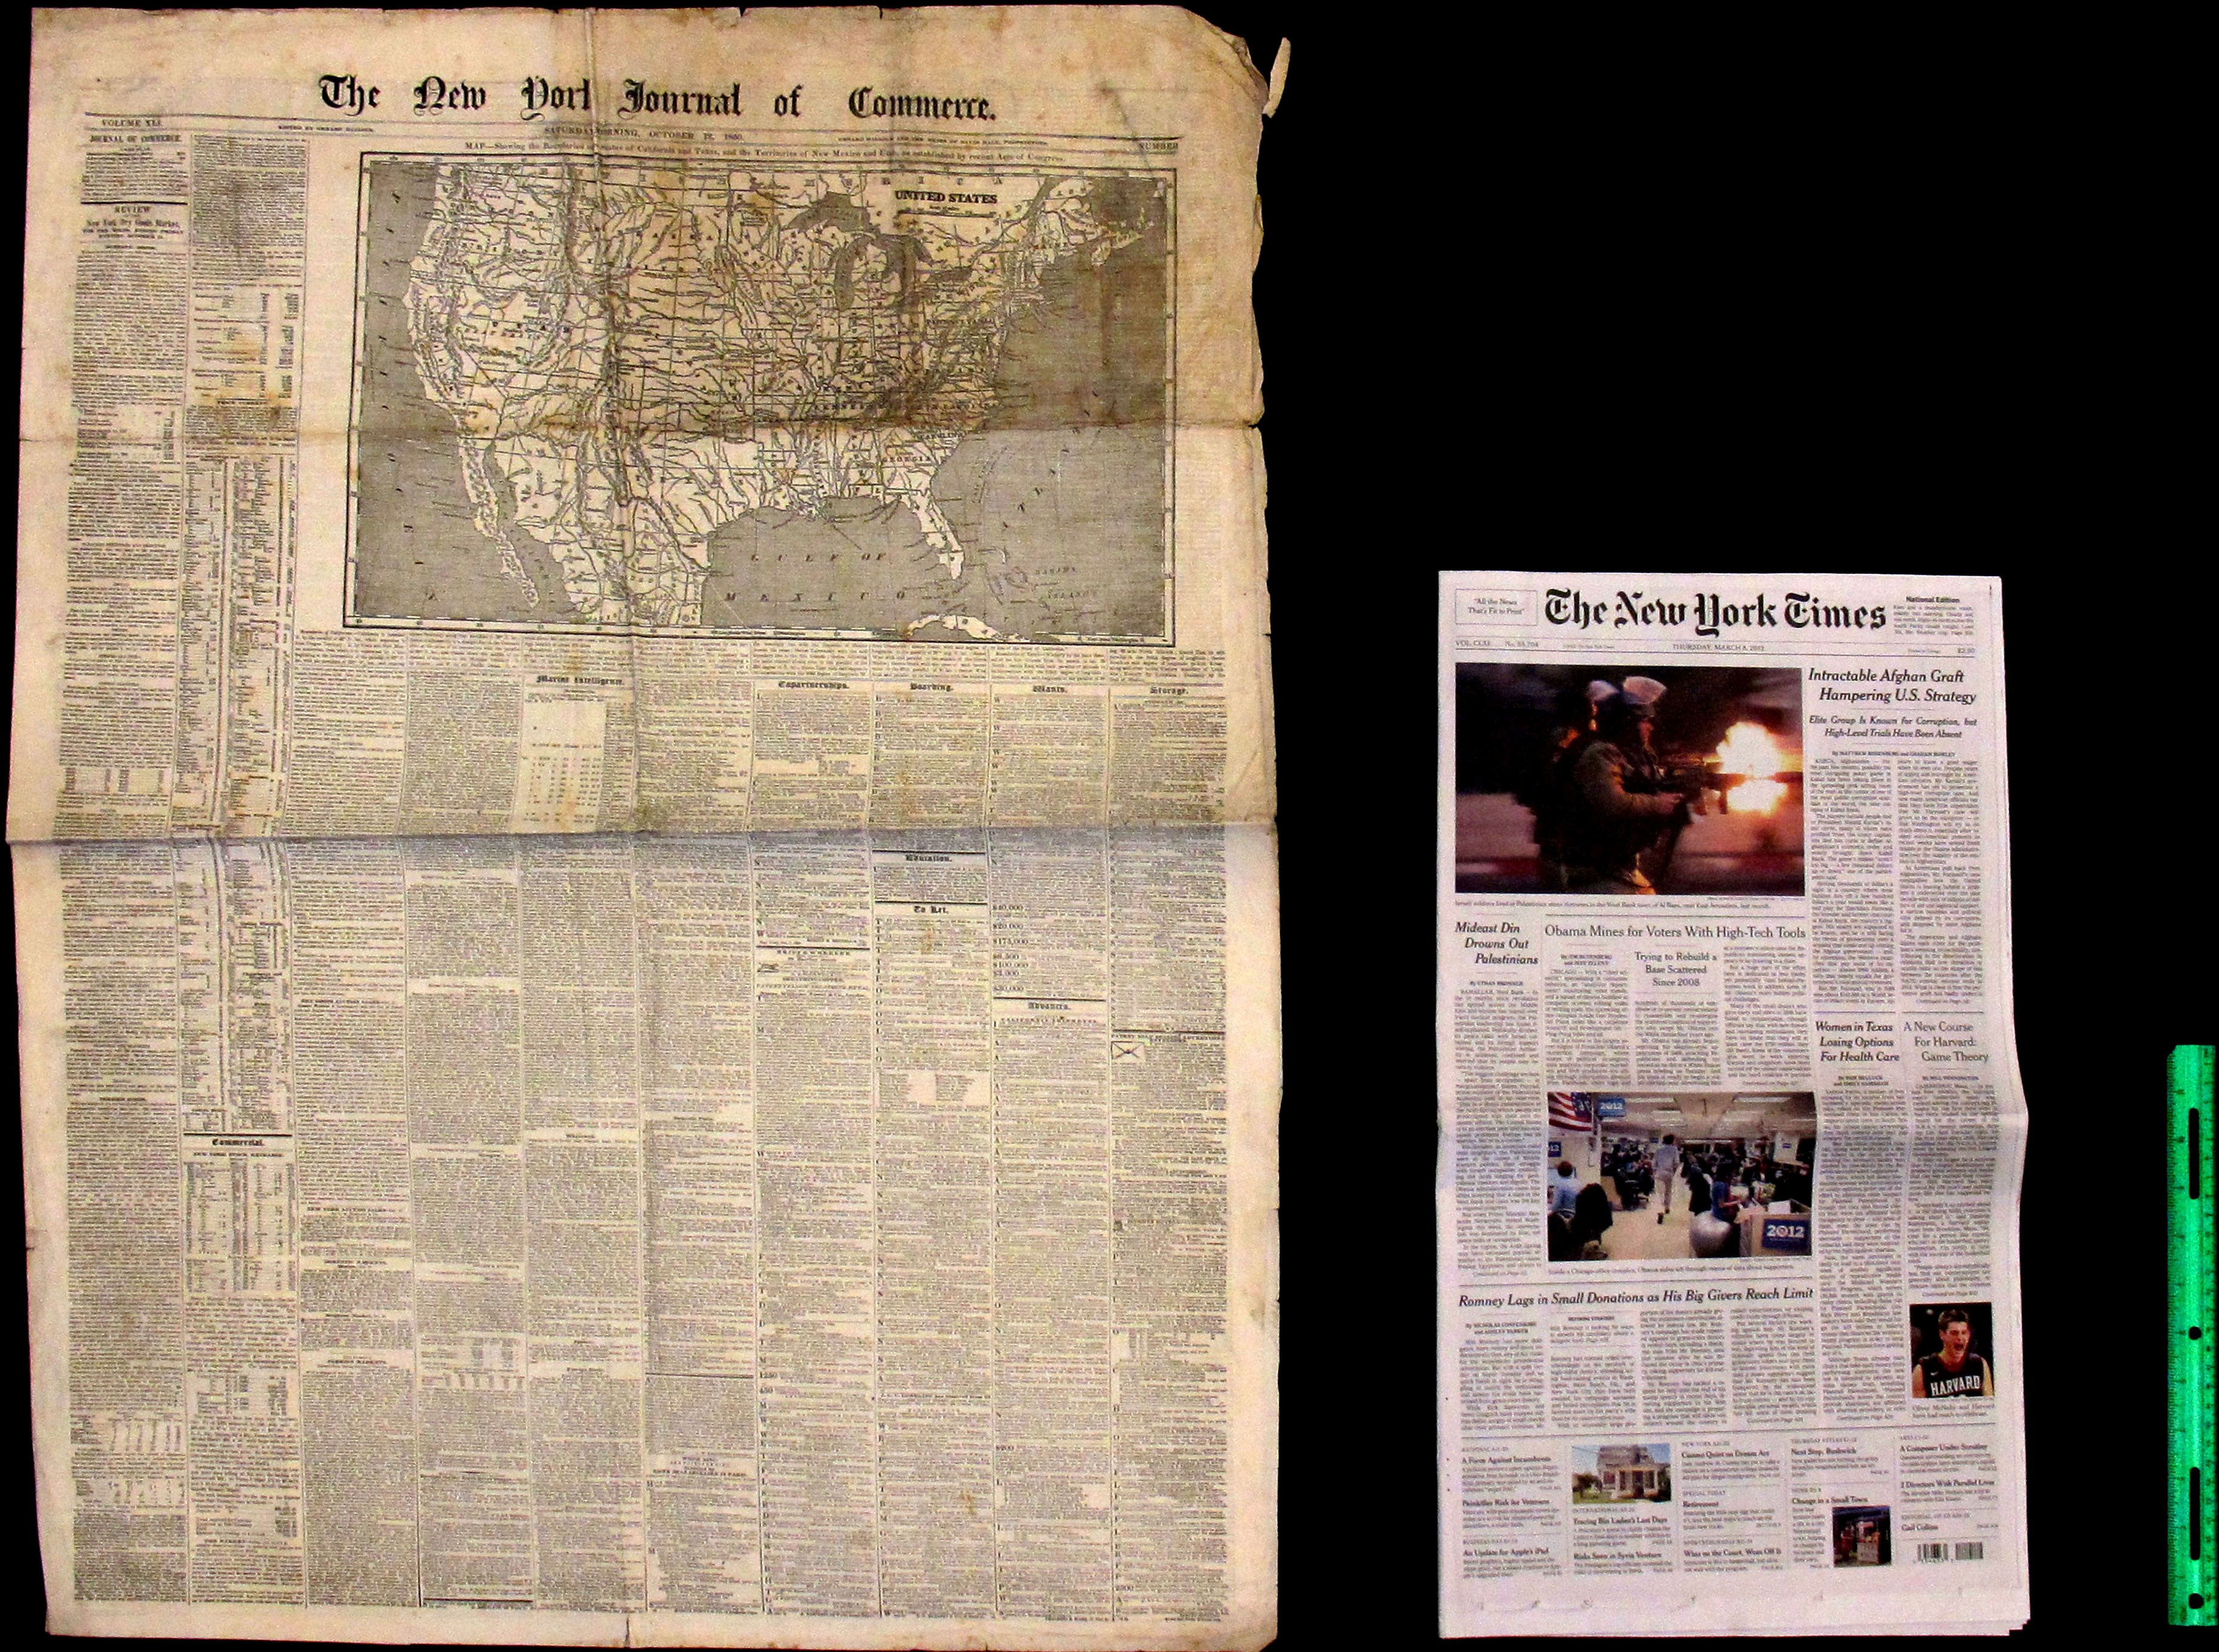 Antebellum Country Paper Compared with a Broadsheet from 2012